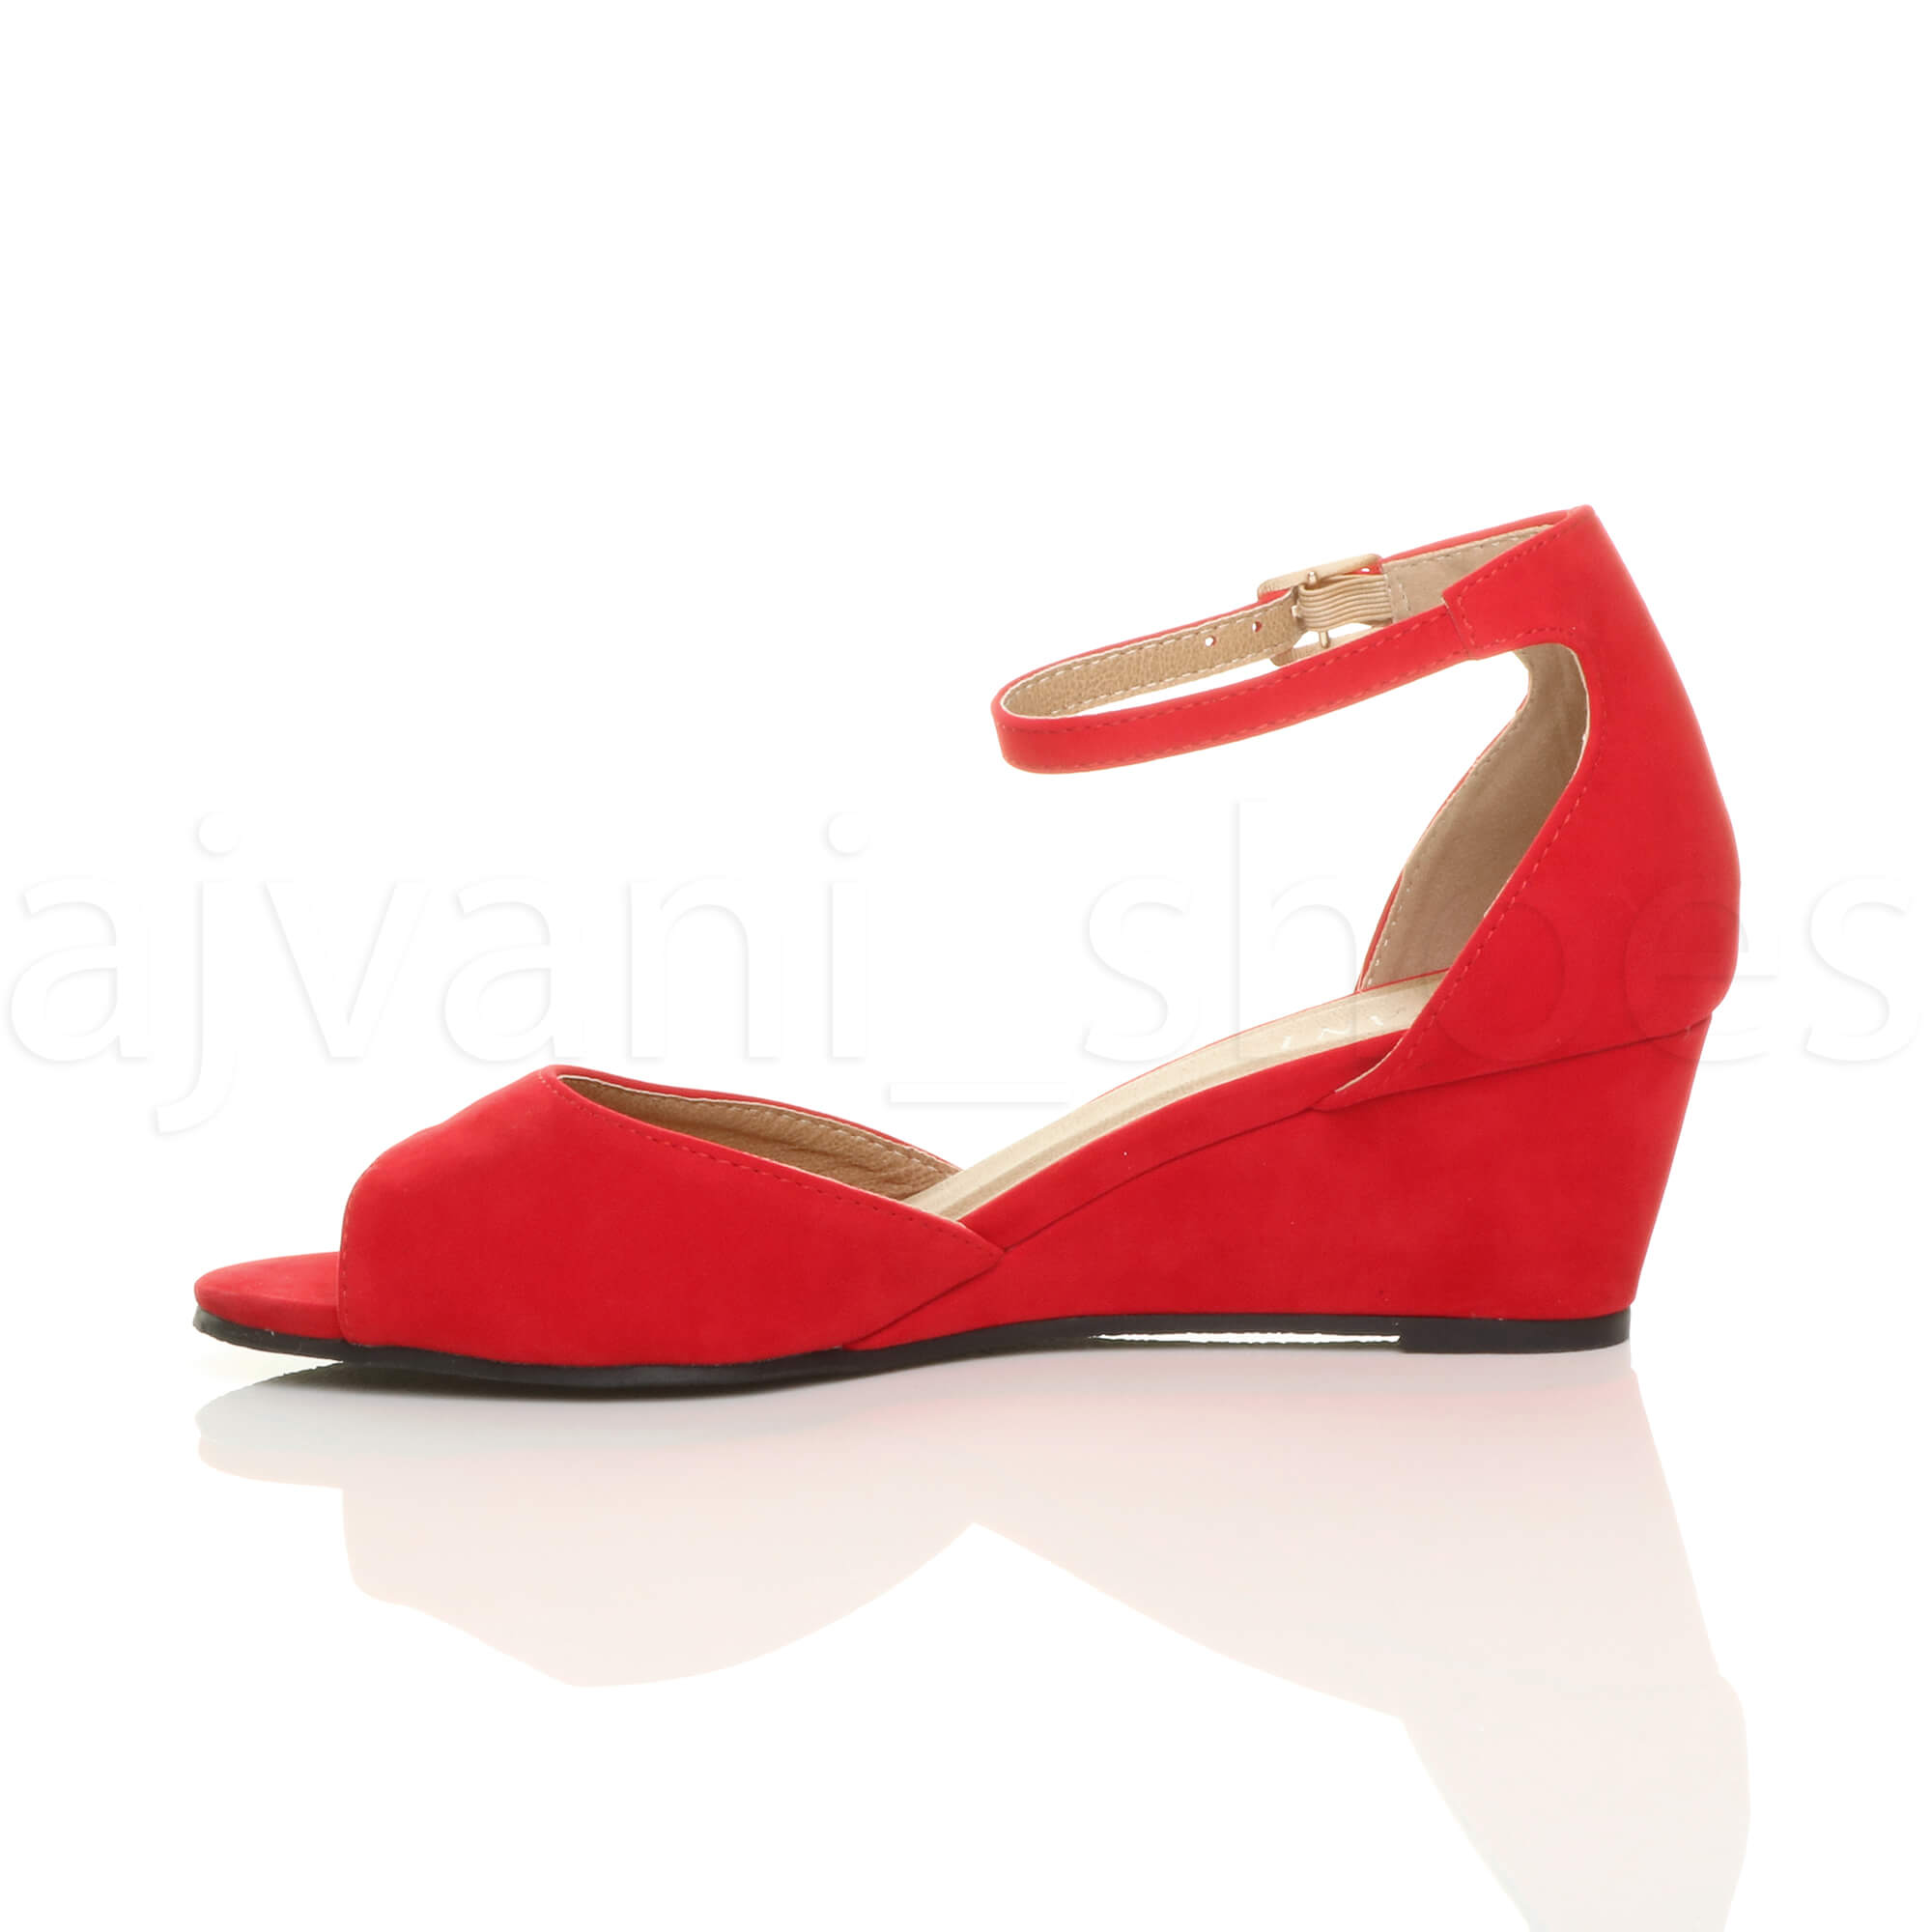 WOMENS-LADIES-LOW-MID-WEDGE-HEEL-ANKLE-STRAP-SMART-CASUAL-EVENING-SANDALS-SIZE thumbnail 124